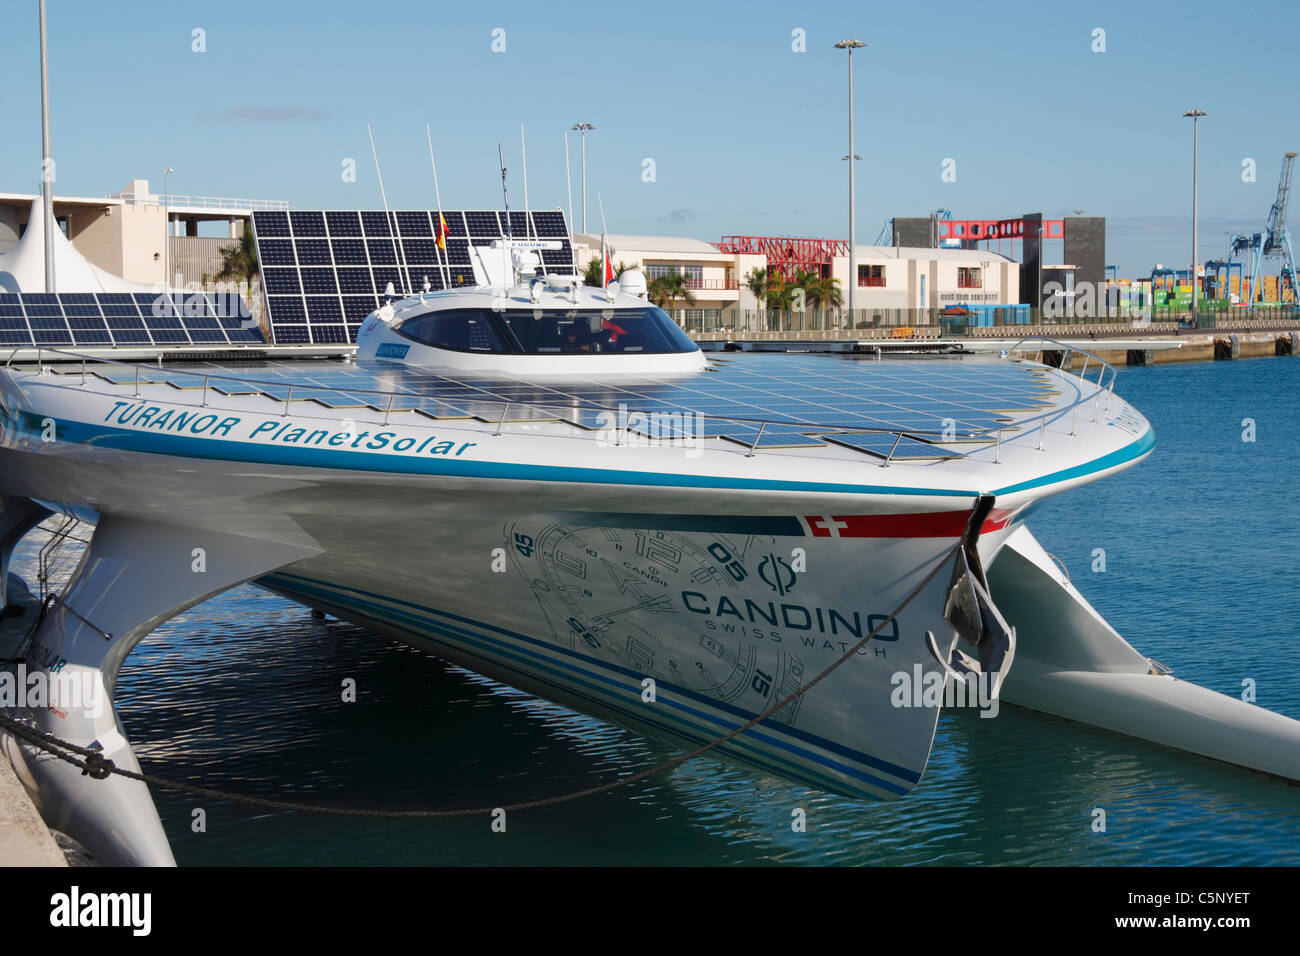 Solar panels on the world's largest solar powered boat, 'Turanor Planet Solar'. Circumnavigating the - Stock Image